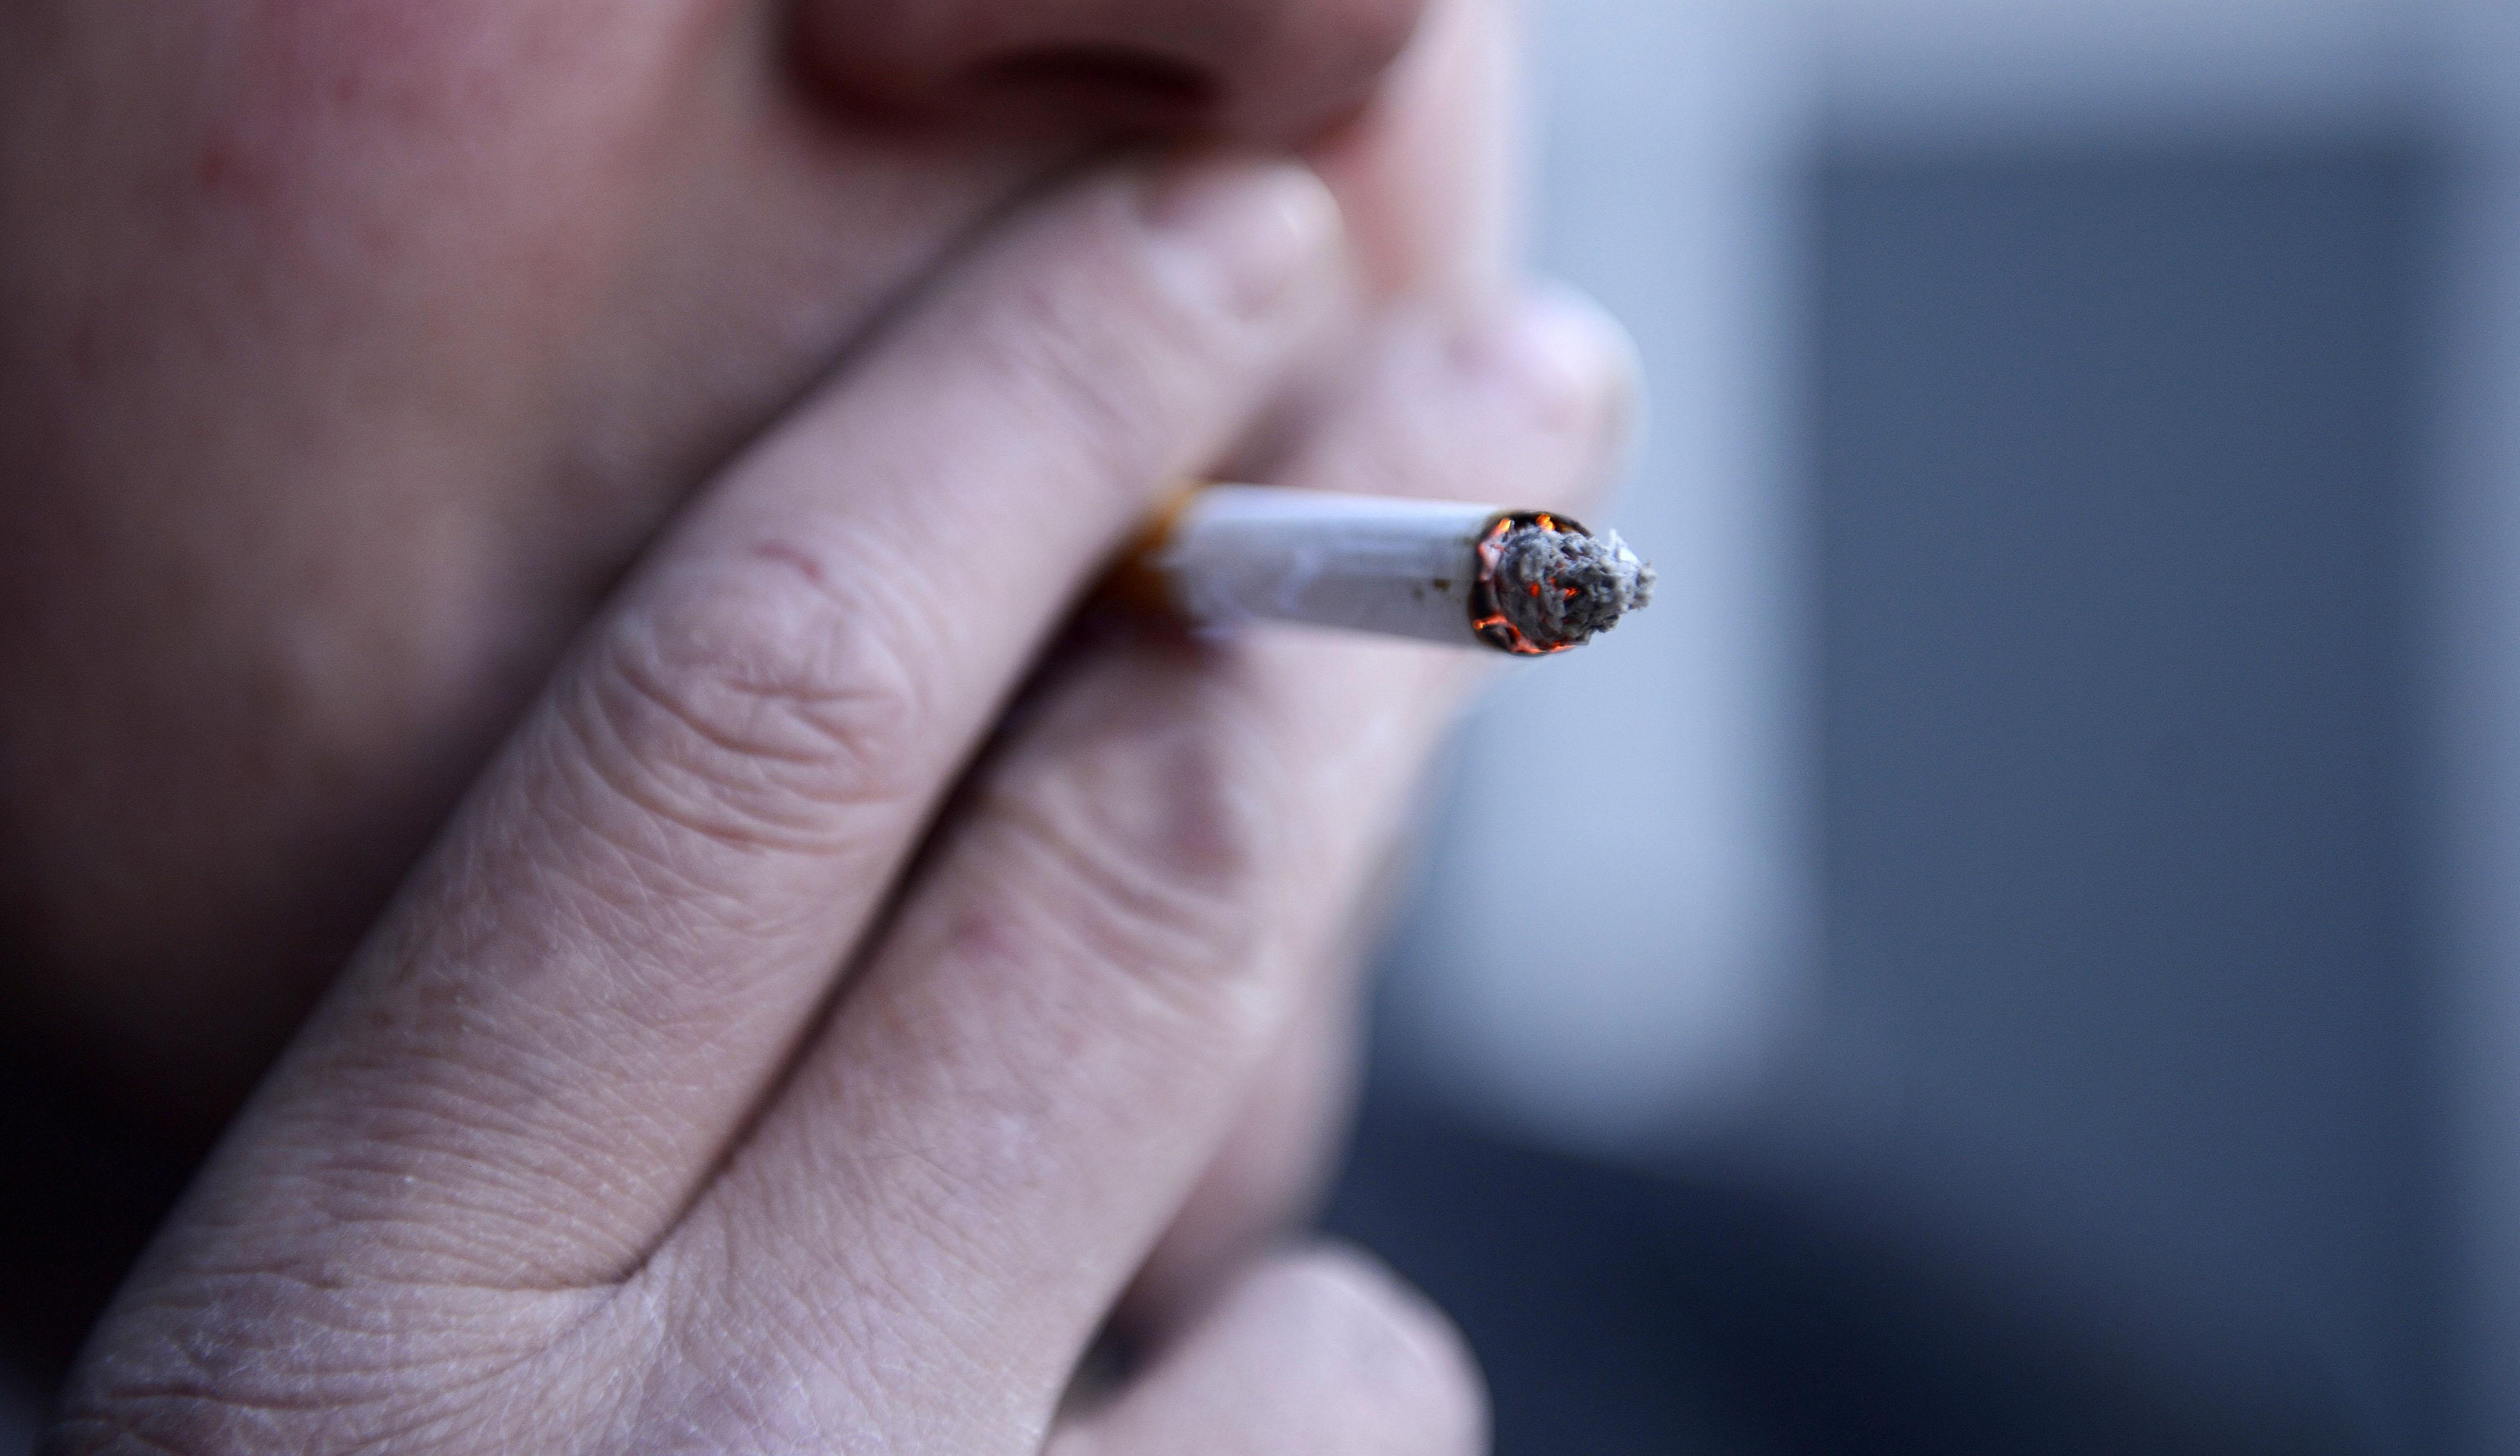 Smokers 'twice as likely' to suffer from depression